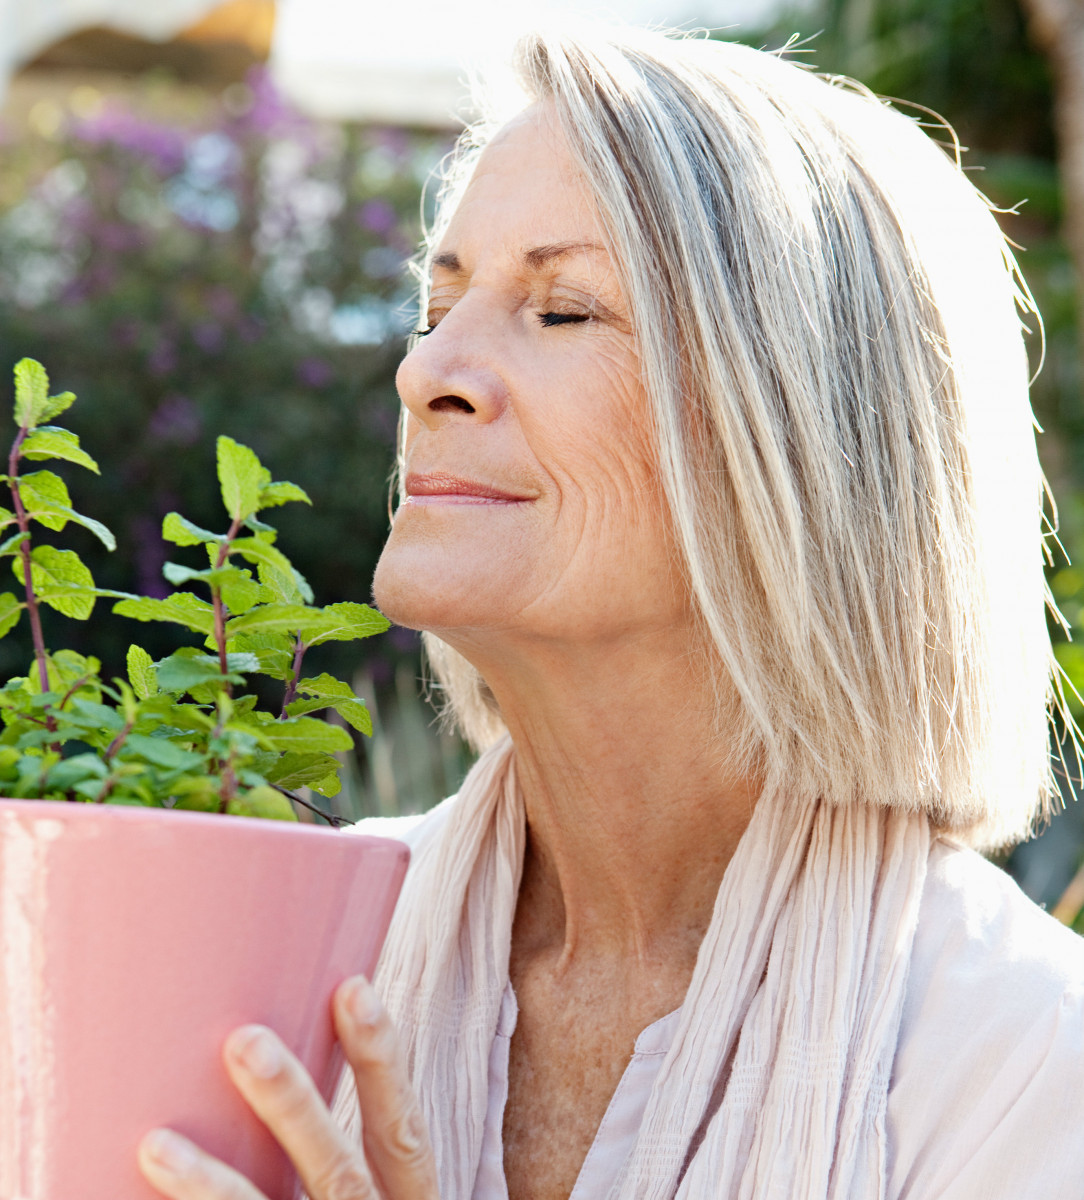 odor tests and Alzheimer's disease